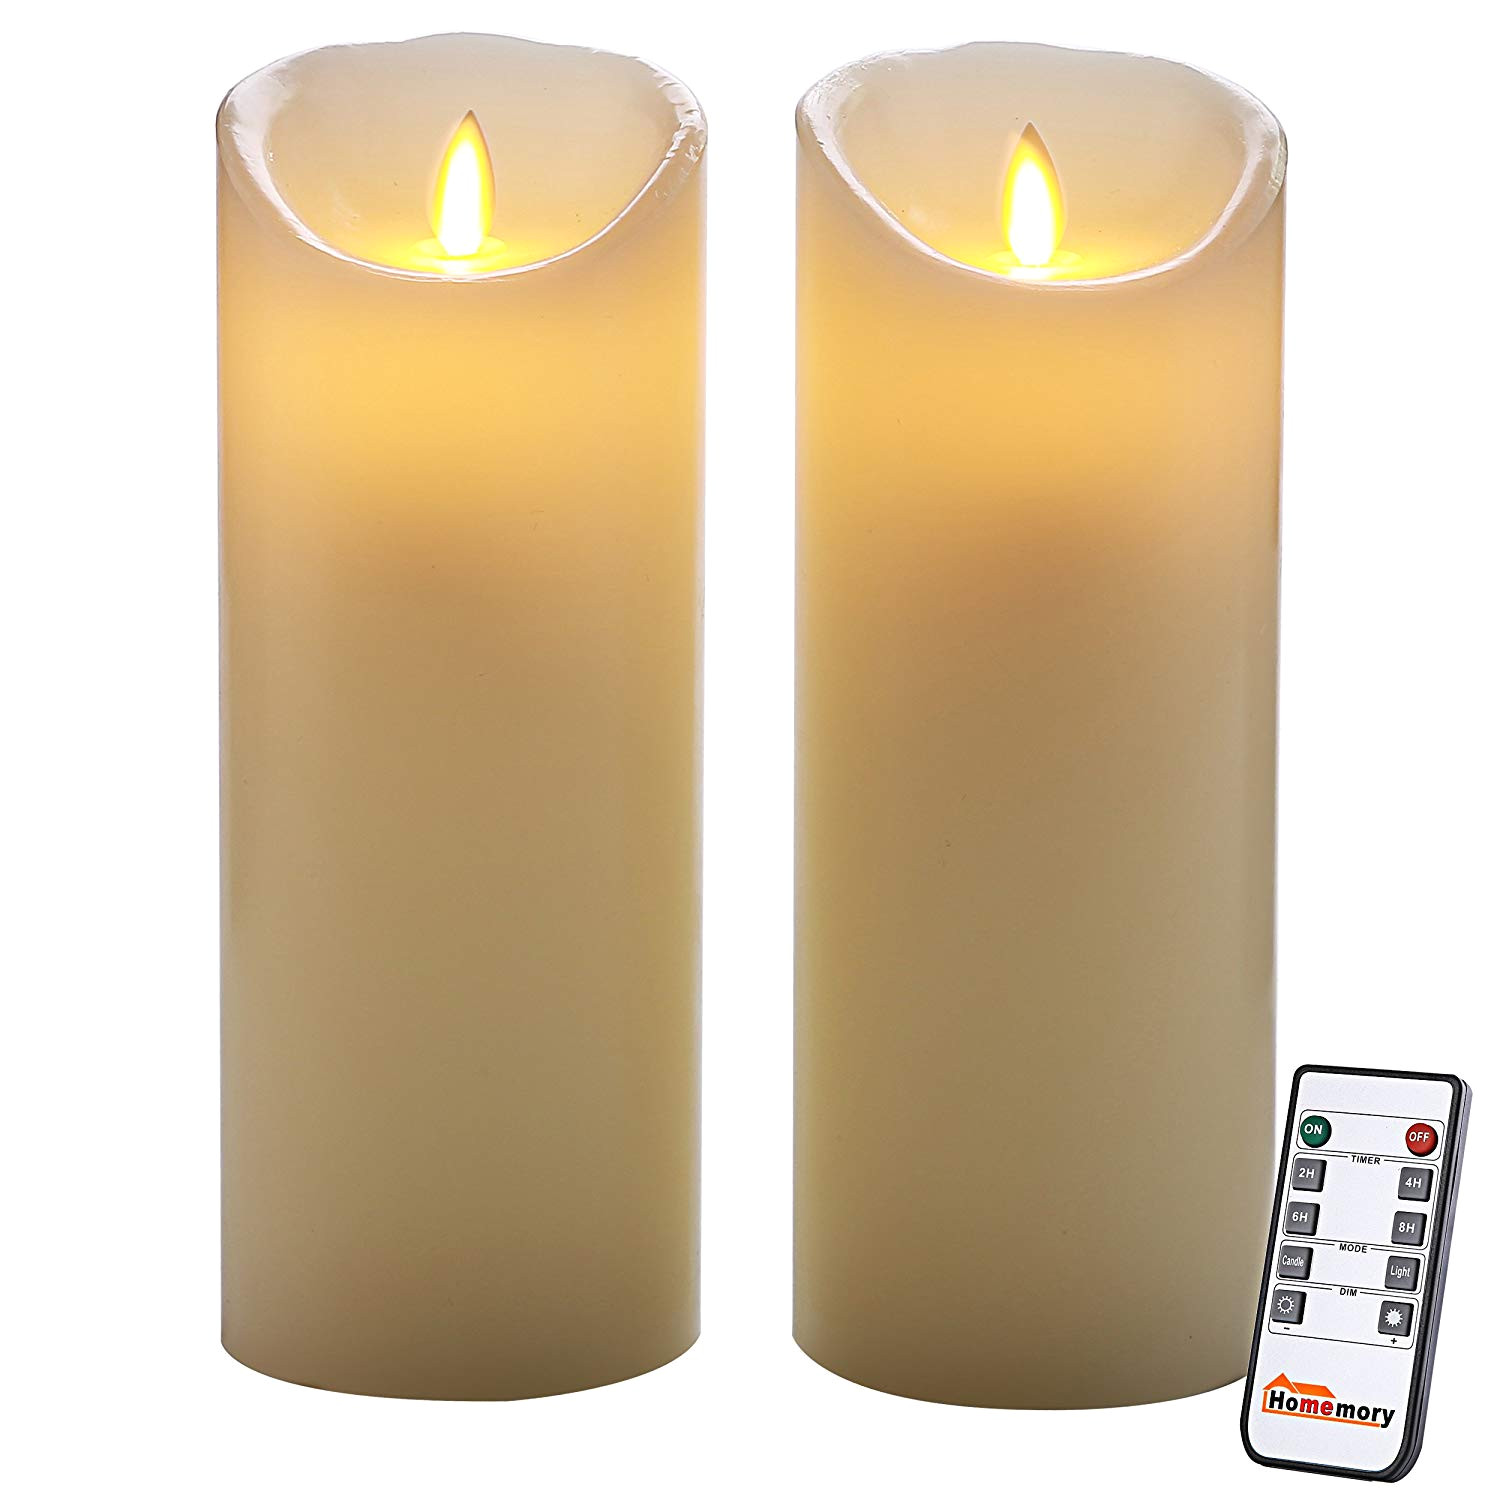 amazon com homemory 9 inch flameless timer candle with remote pack of 2 realistic led flickering votive candle power by battery electric pillar candle